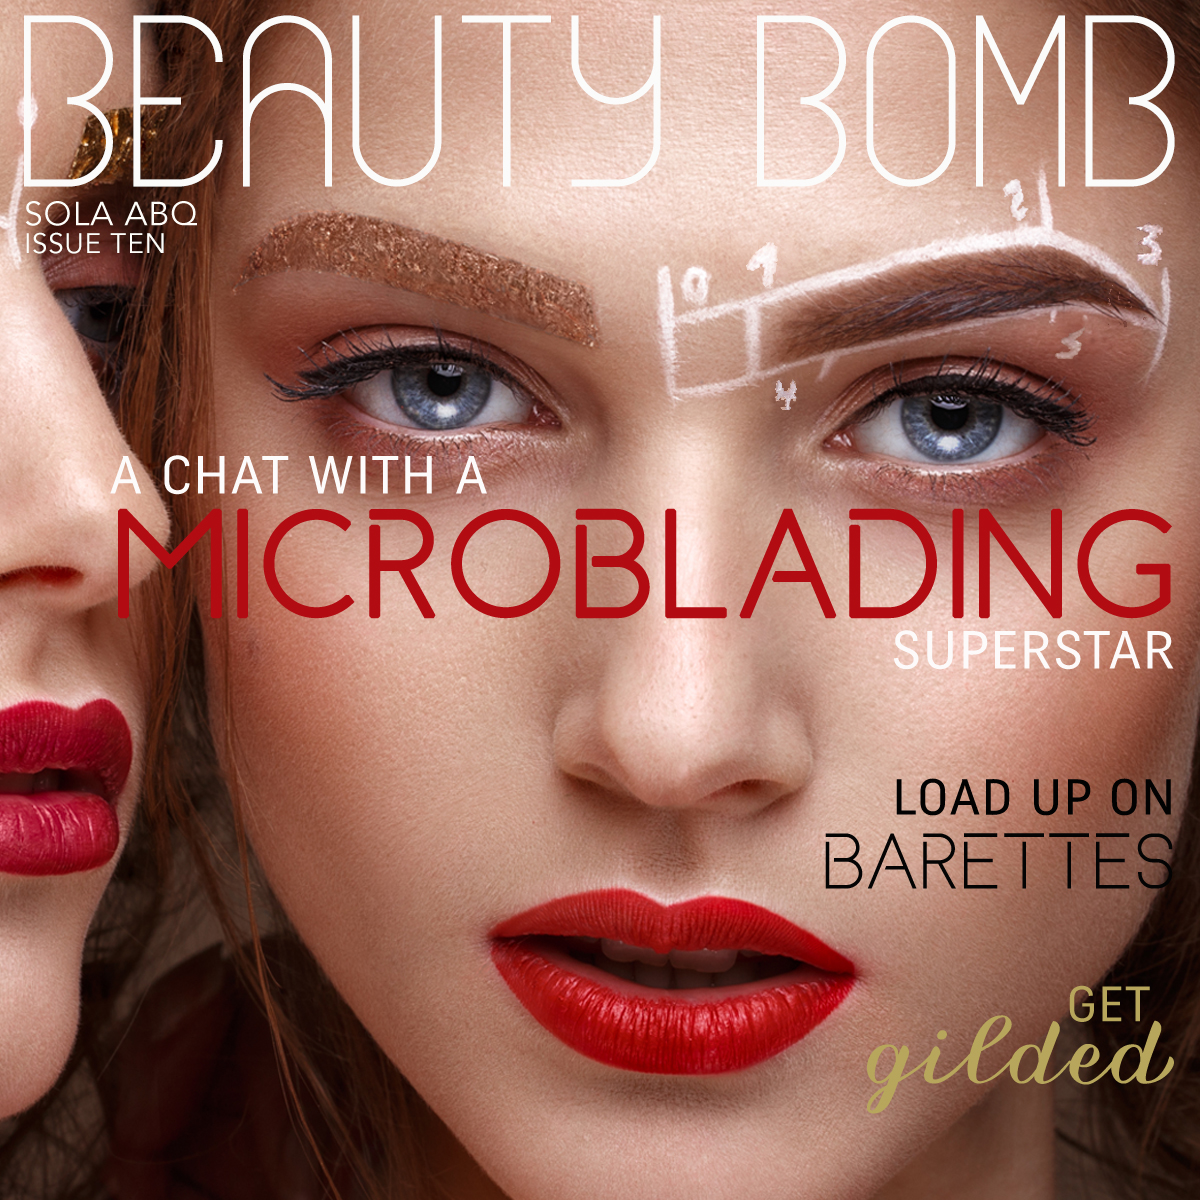 CLICK HERE TO READ THIS MONTH'S ISSUE OF BEAUTY BOMB